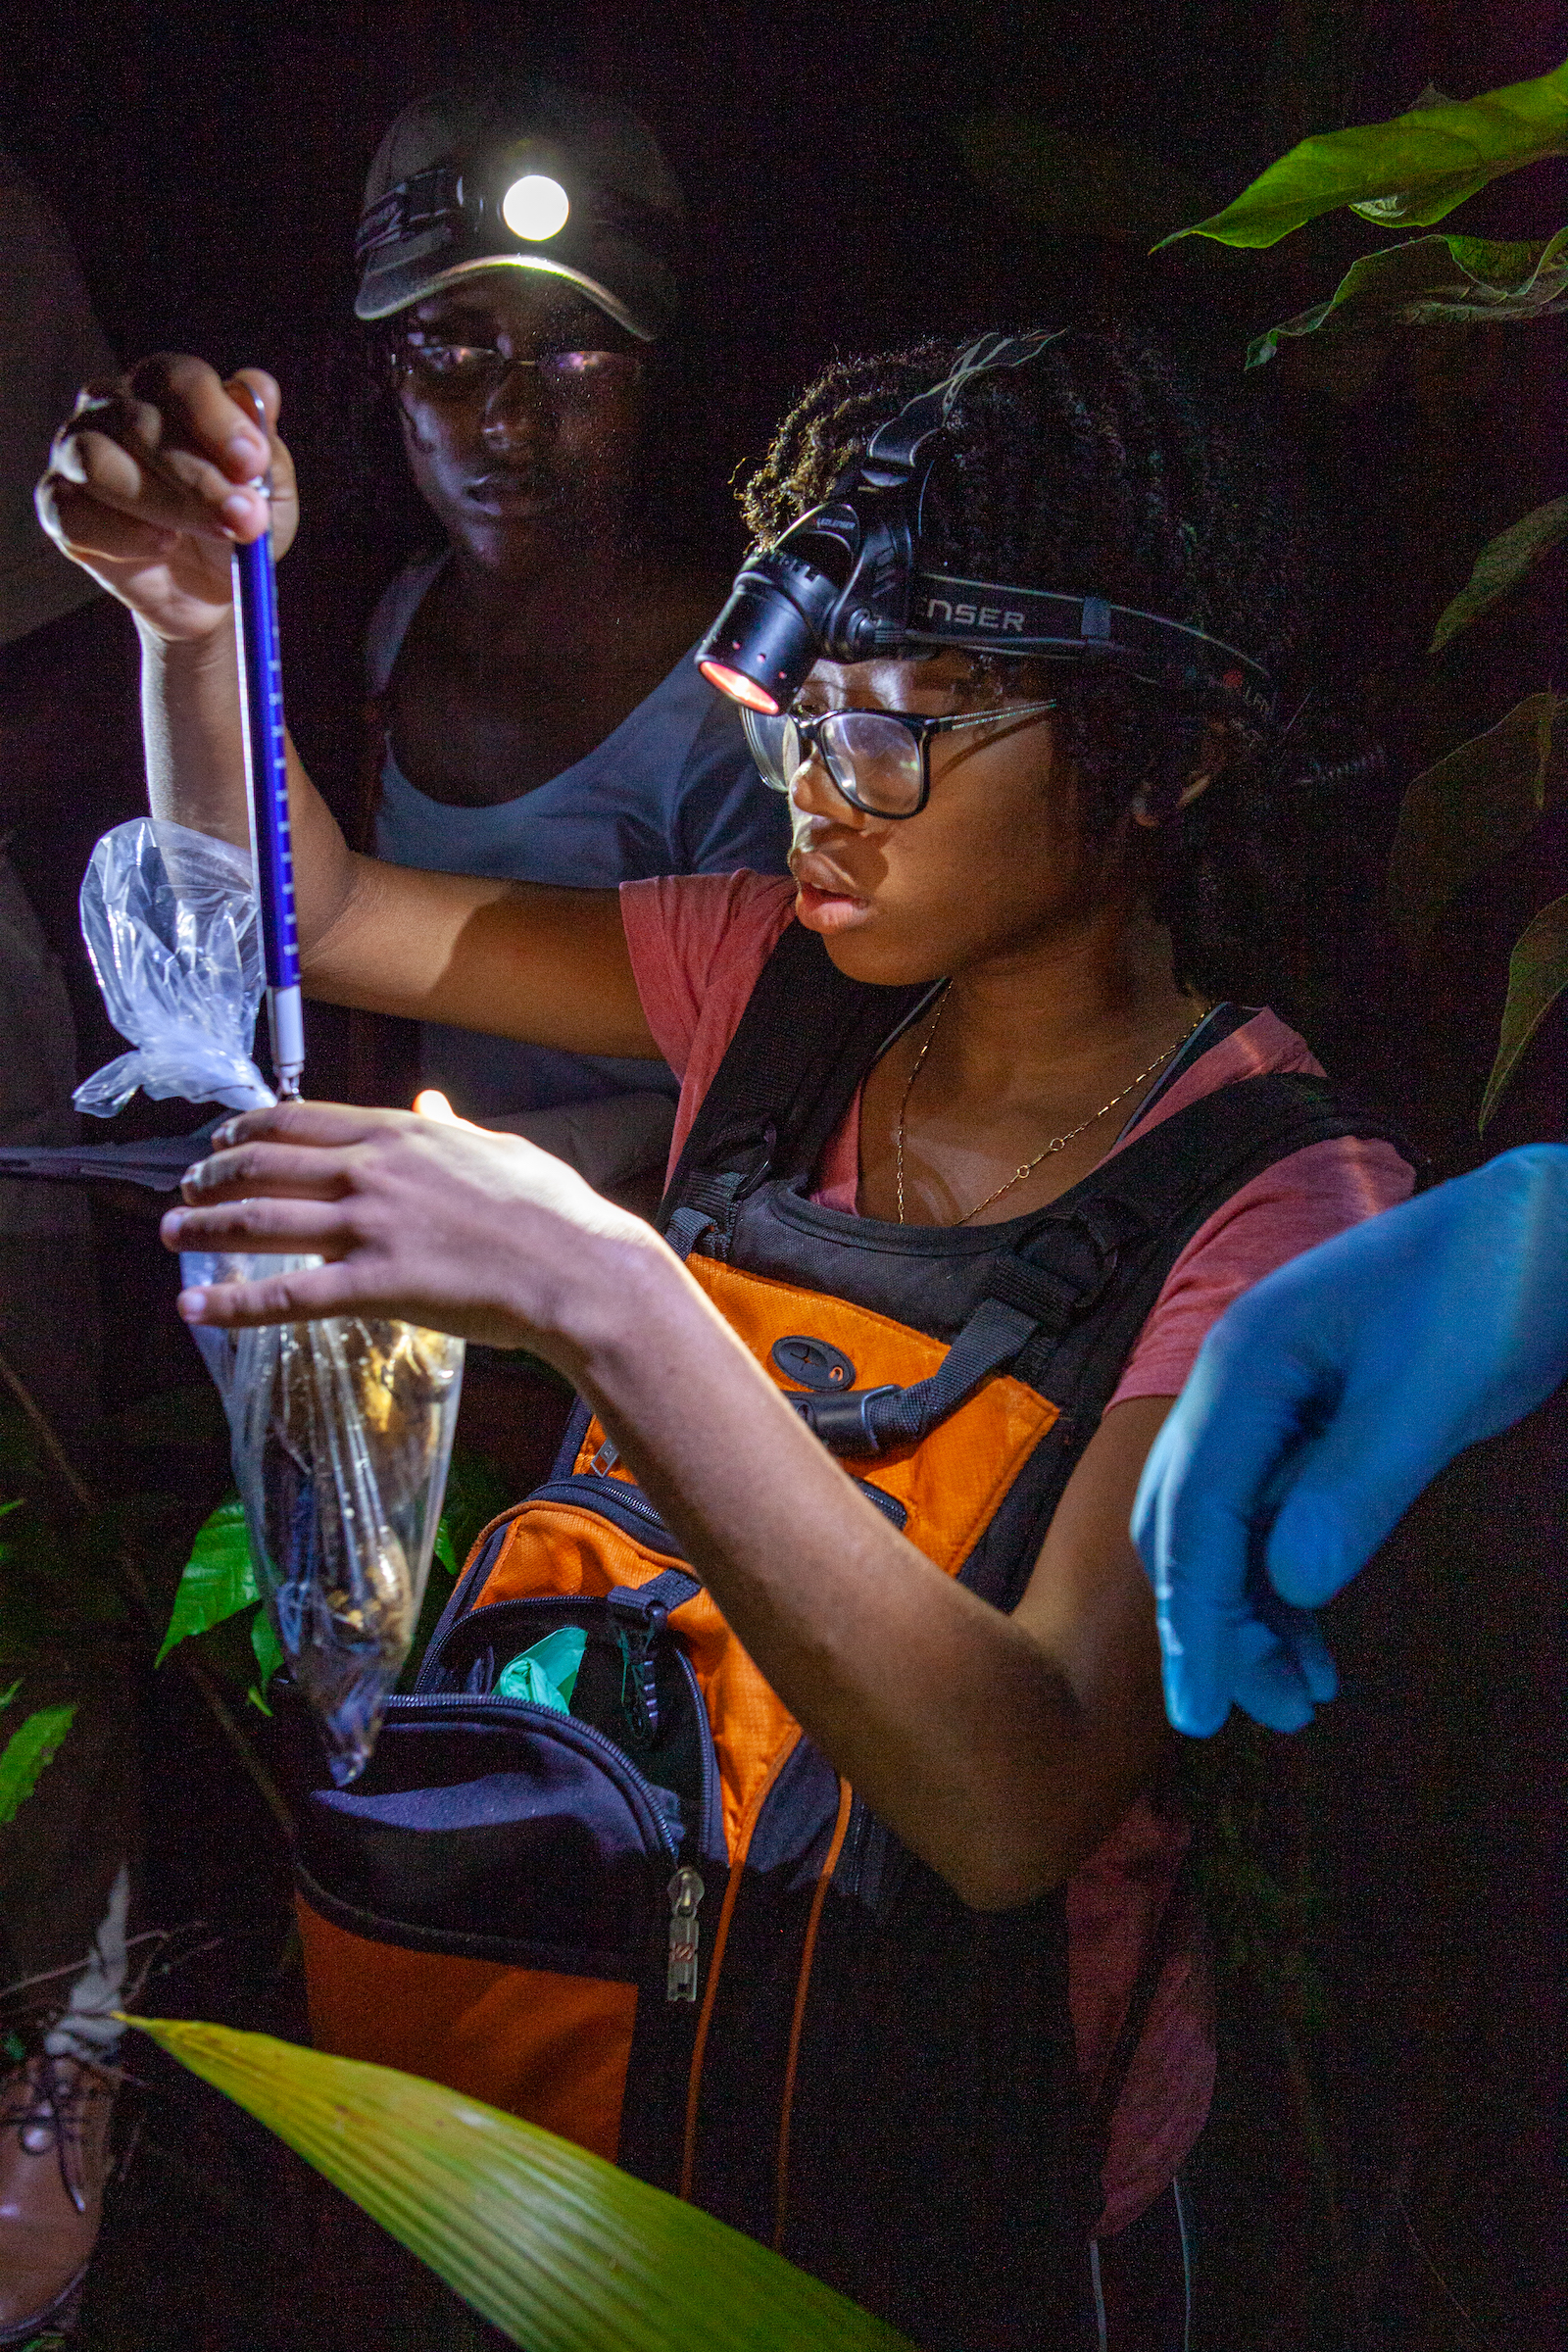 Illuminated by headlamps, Tiffany Mason weighs a wild mountain chicken during a survey on Dominica. Photograph by Geoffrey Giller